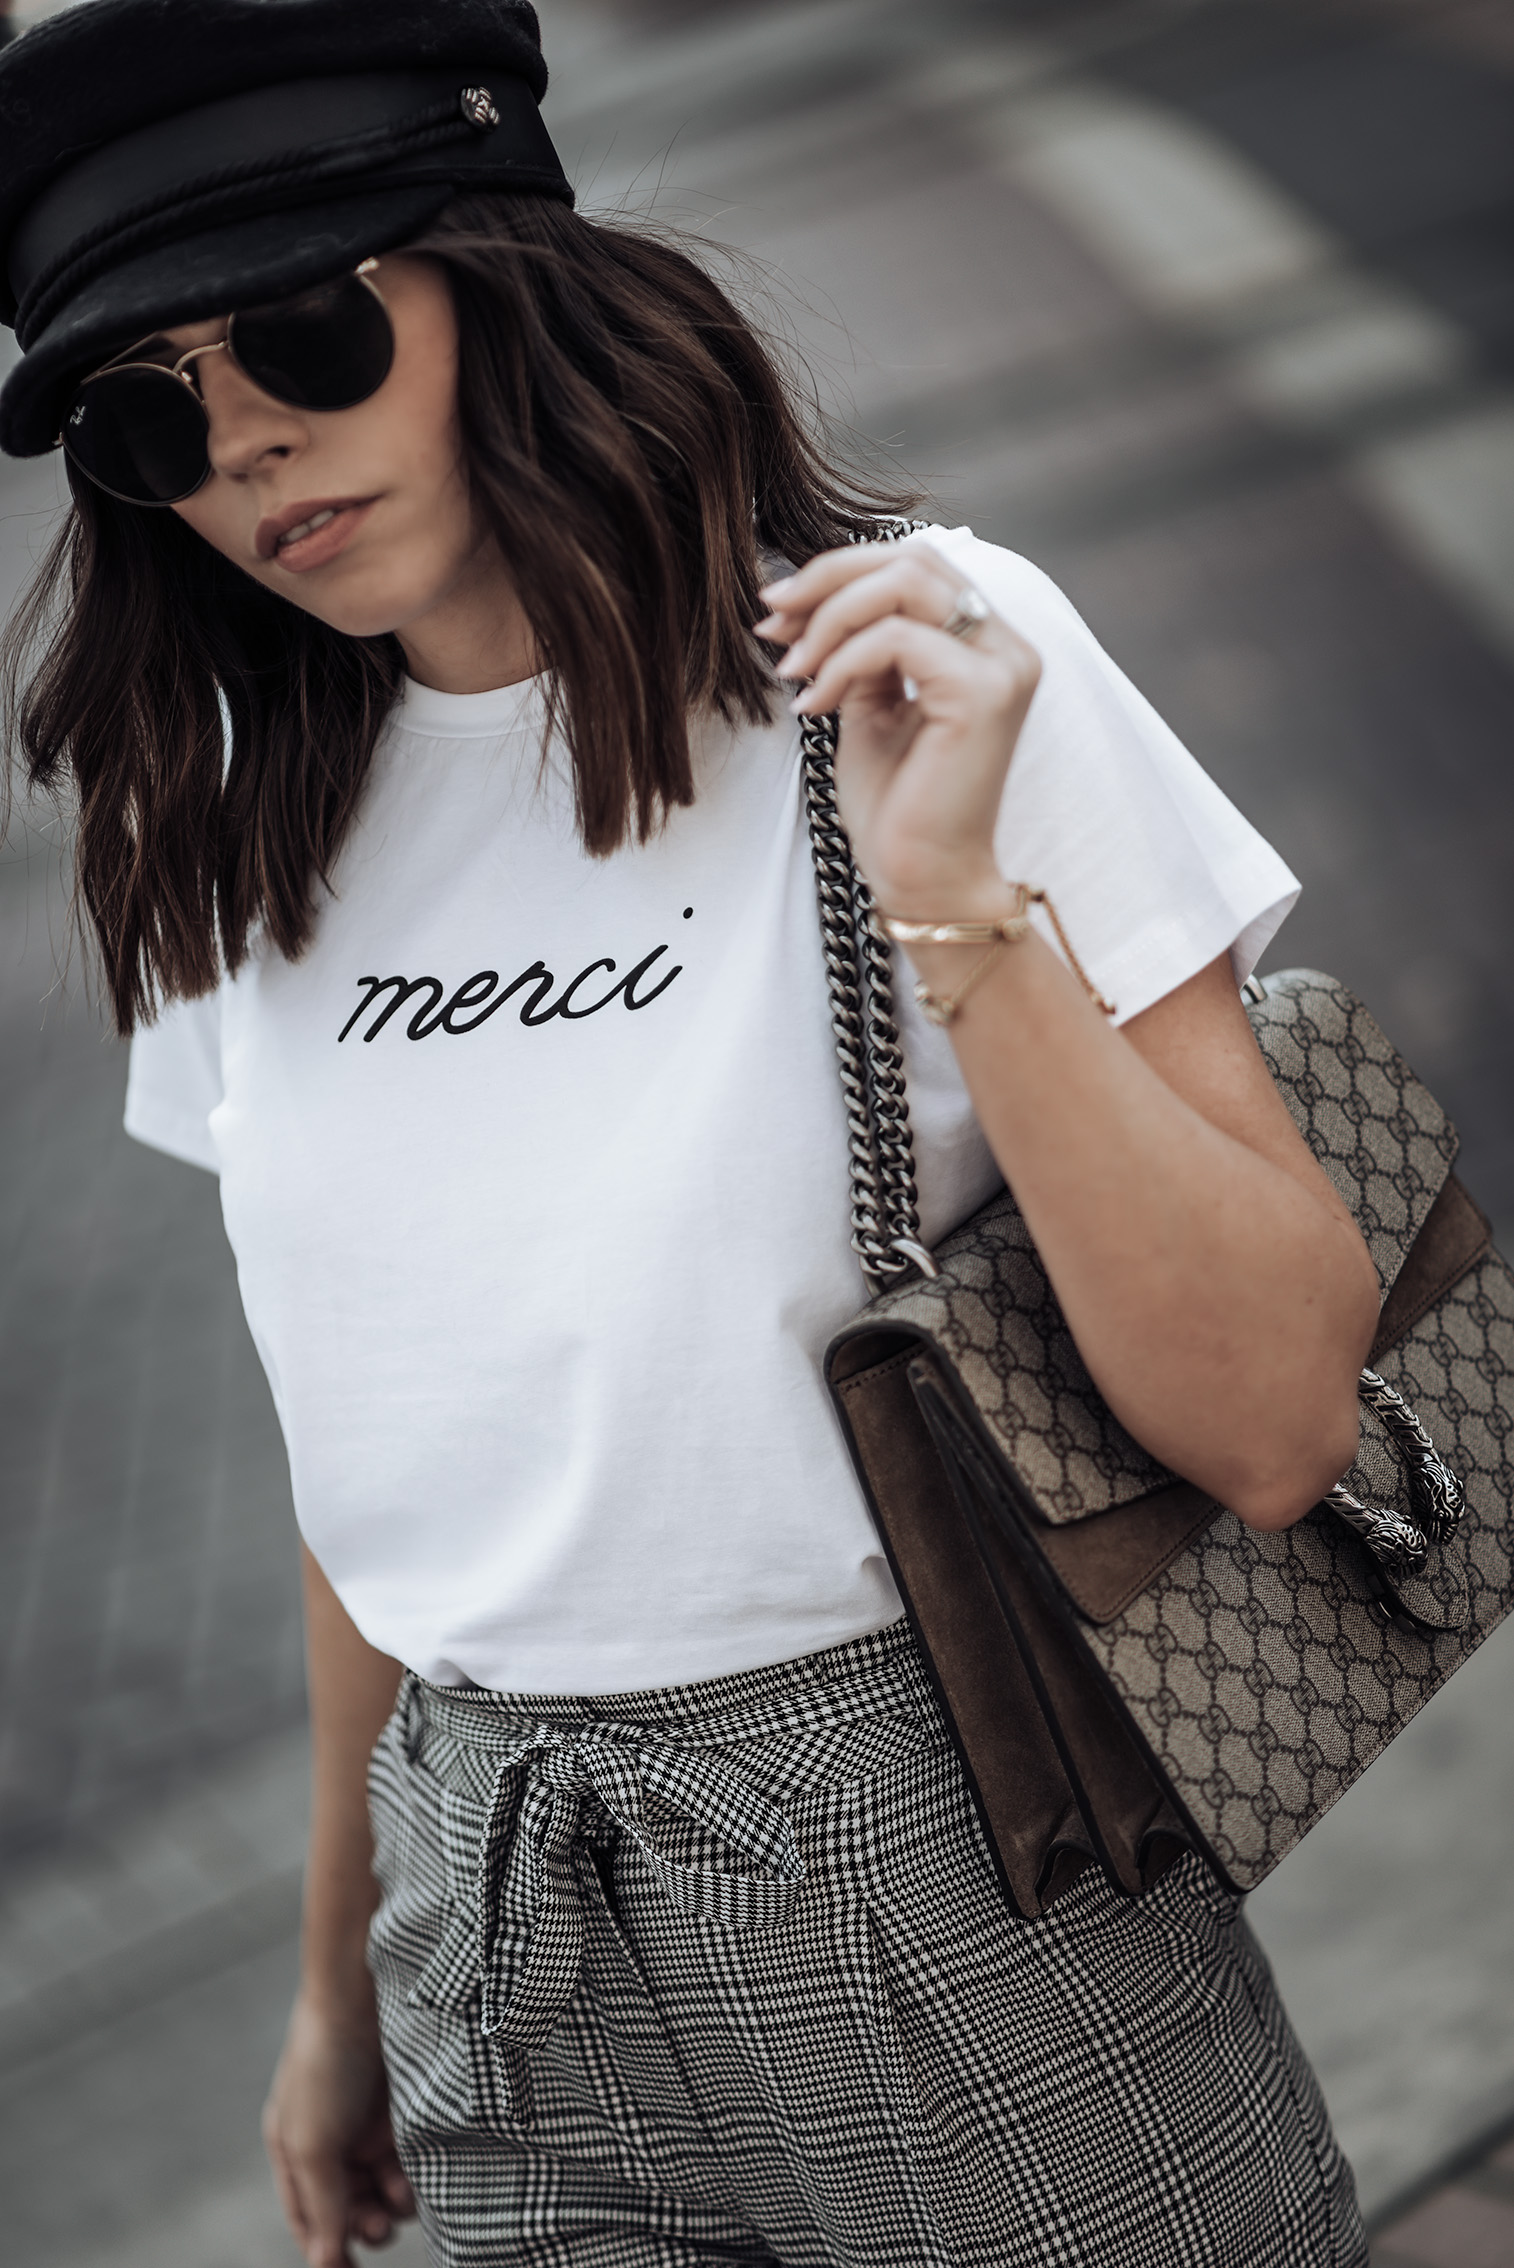 Check print | Merci Beaucoup tee | Check pants (Topshop, similar here) | Cap | Superga Platform sneakers | Gucci Dionysus #streetstyle #checkprint #sneakeroutfits #bakershat #liketkit #shopstyle